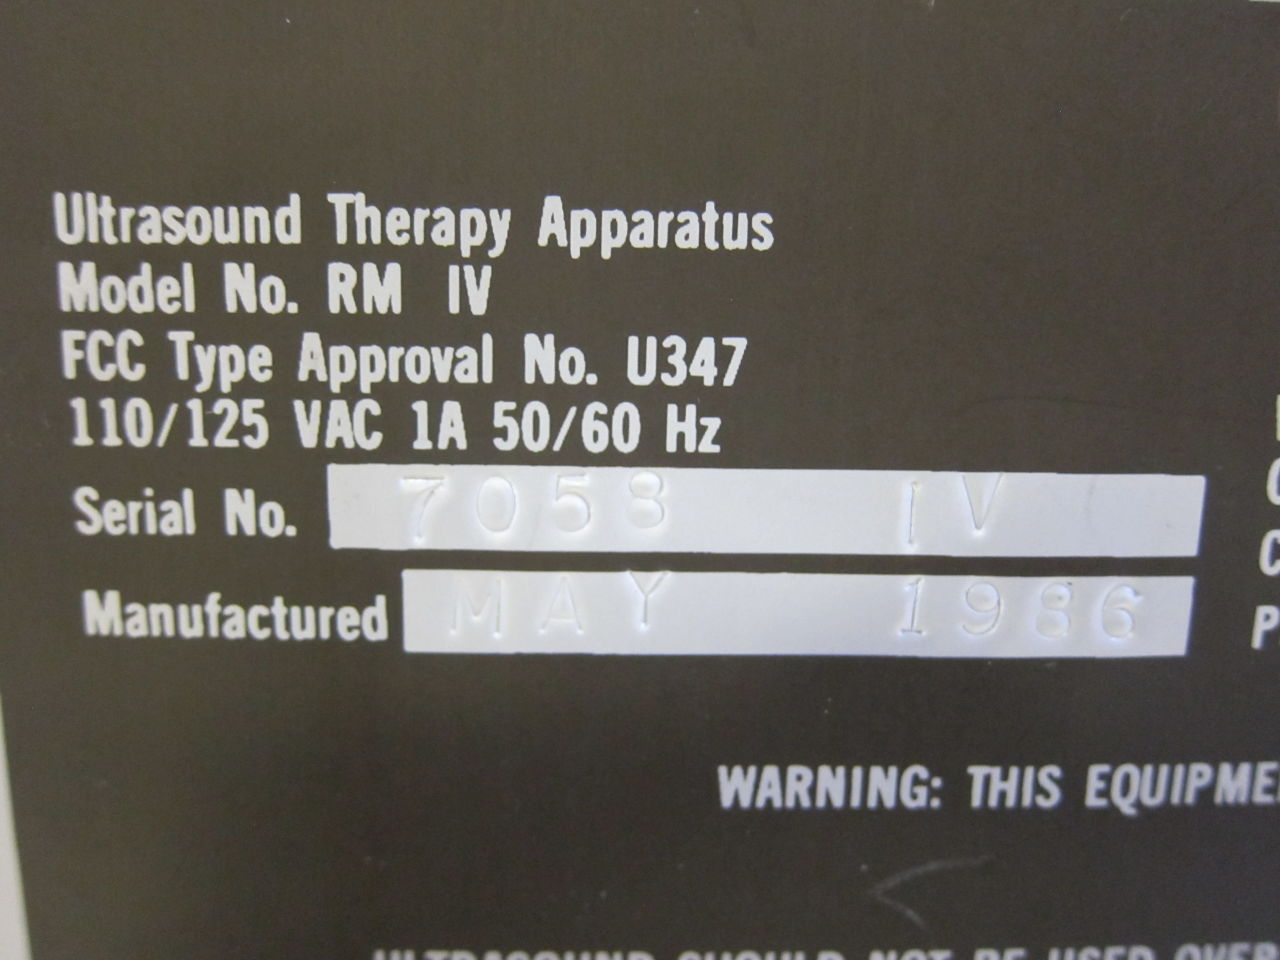 RICH-MAR CORPORATION RM IV Ultrasound Therapy Unit